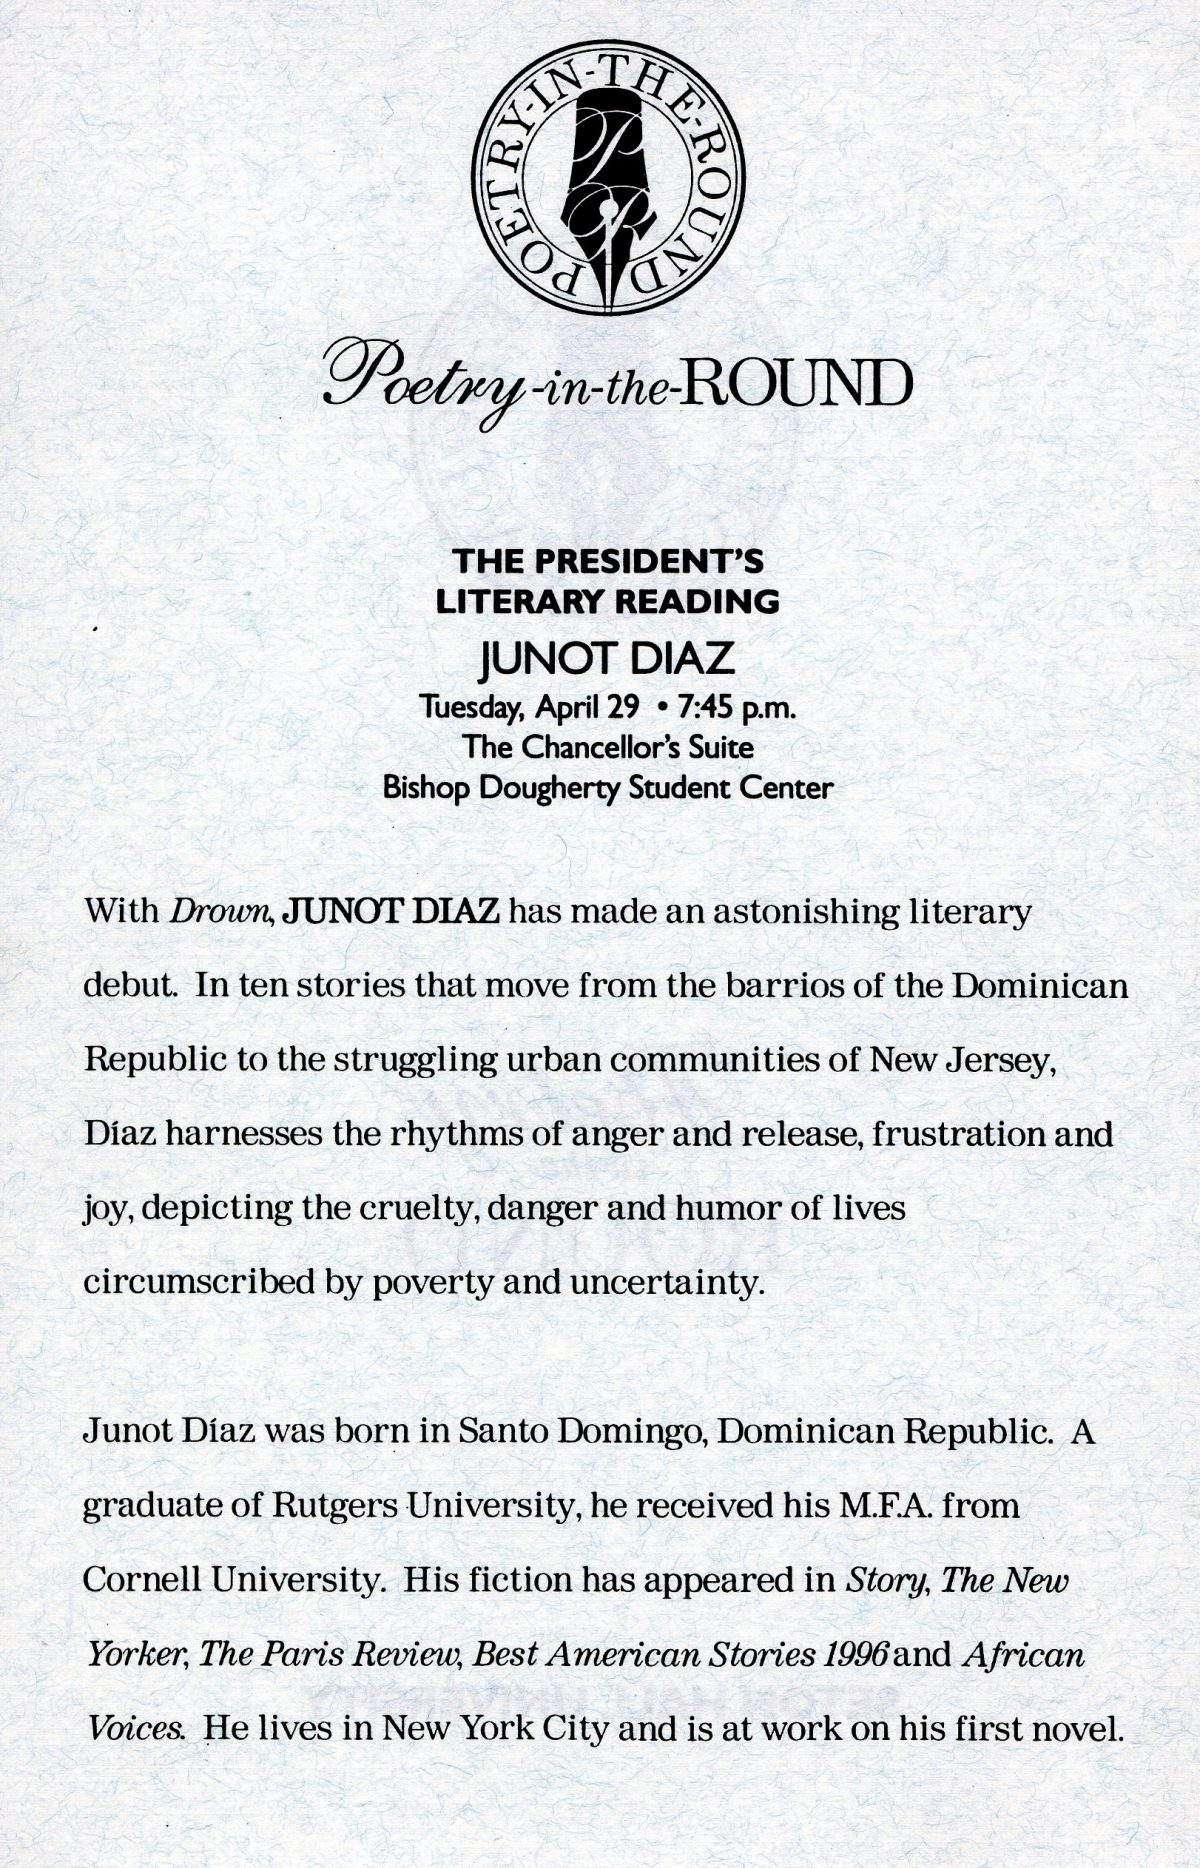 """Student Perspective on Junot Diaz and """"Poetry in the Round"""""""